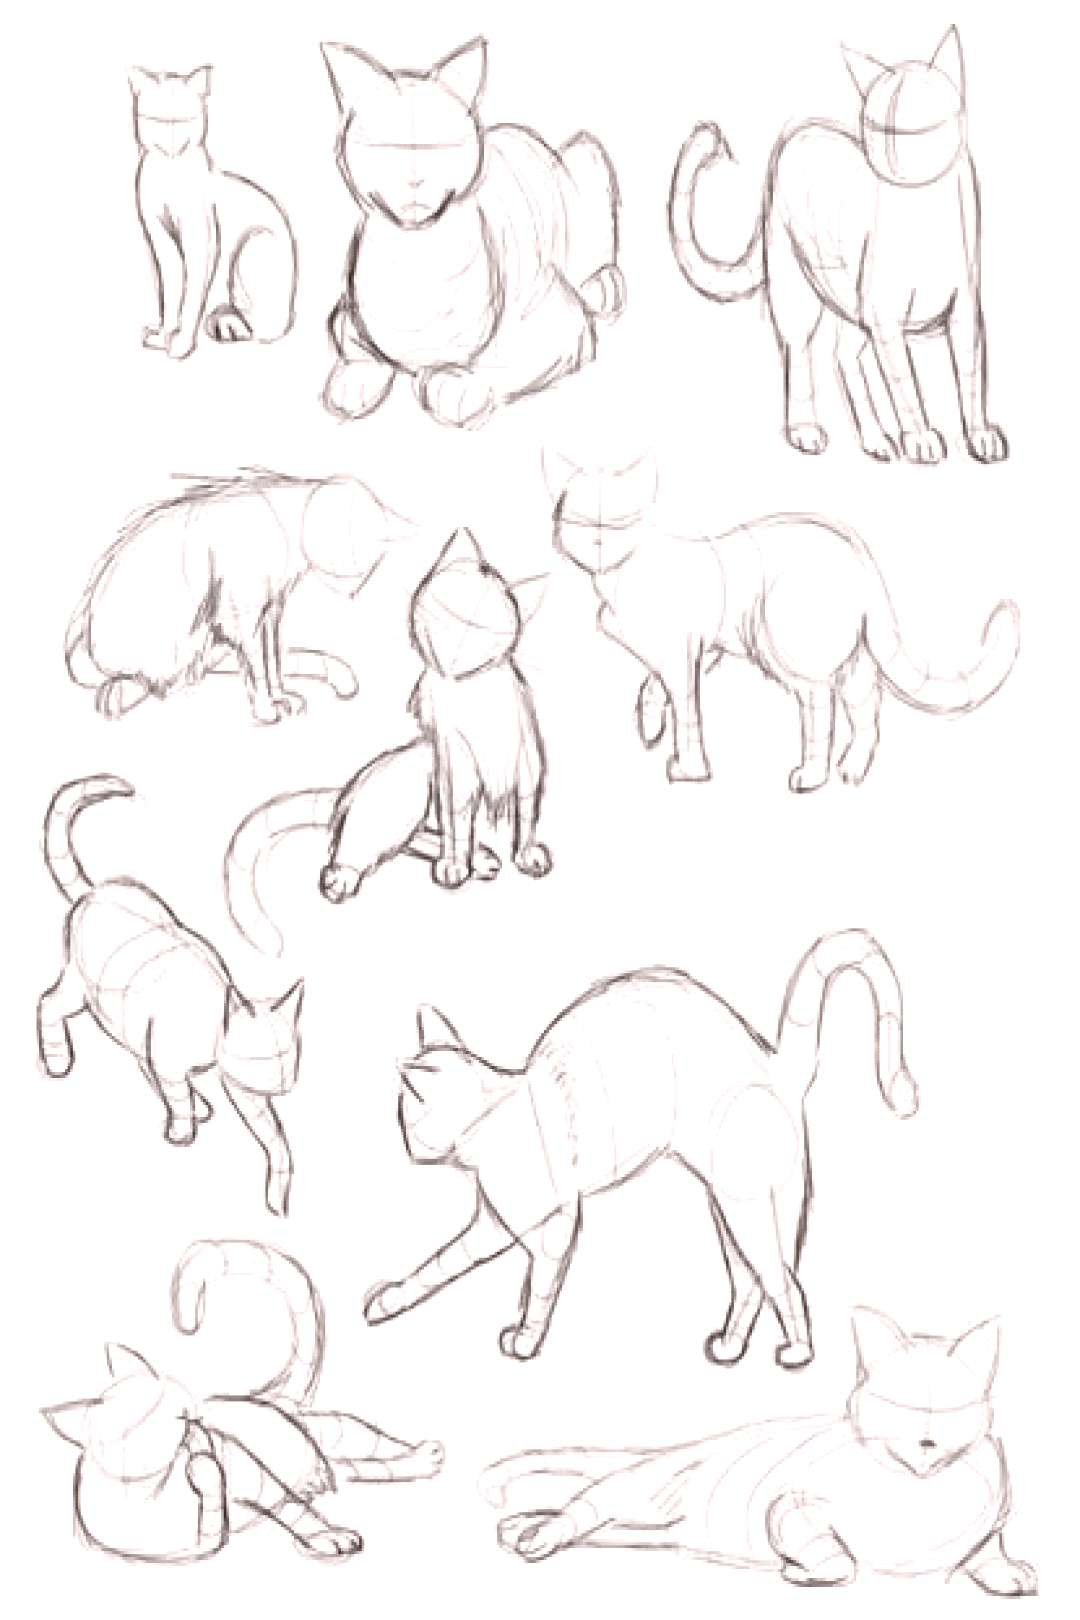 Cat Gestures Drawing Reference Guide | Drawing References and Resources |